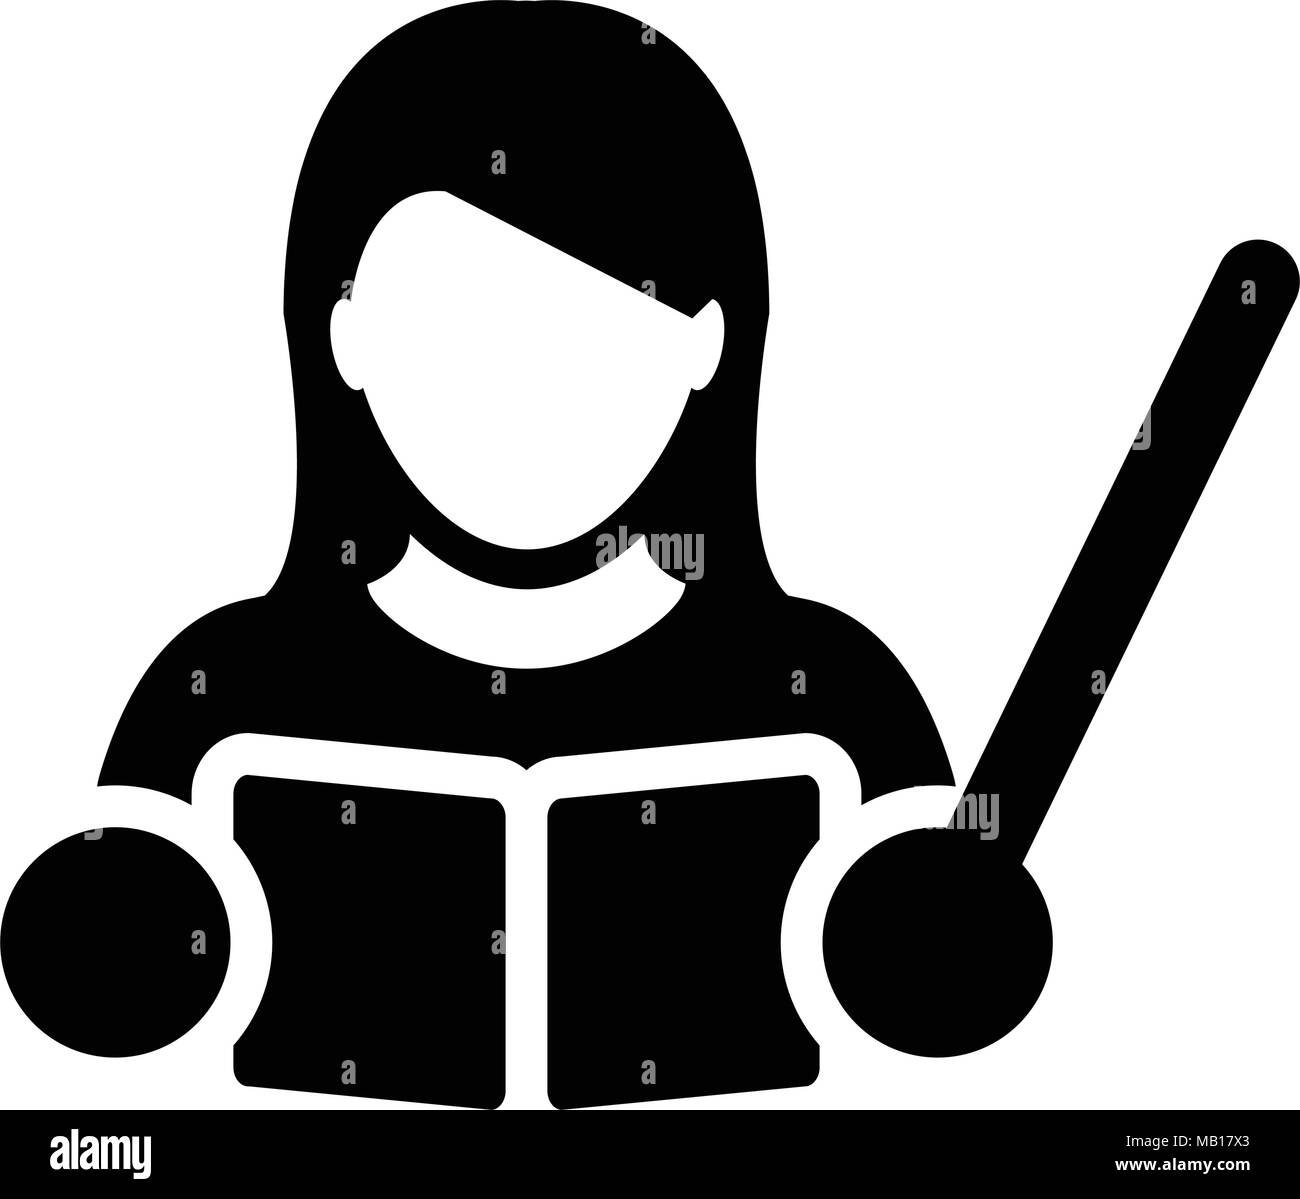 Book Icon Vector Male Student Or Teacher Person Profile: Female Teacher Classroom Black And White Stock Photos